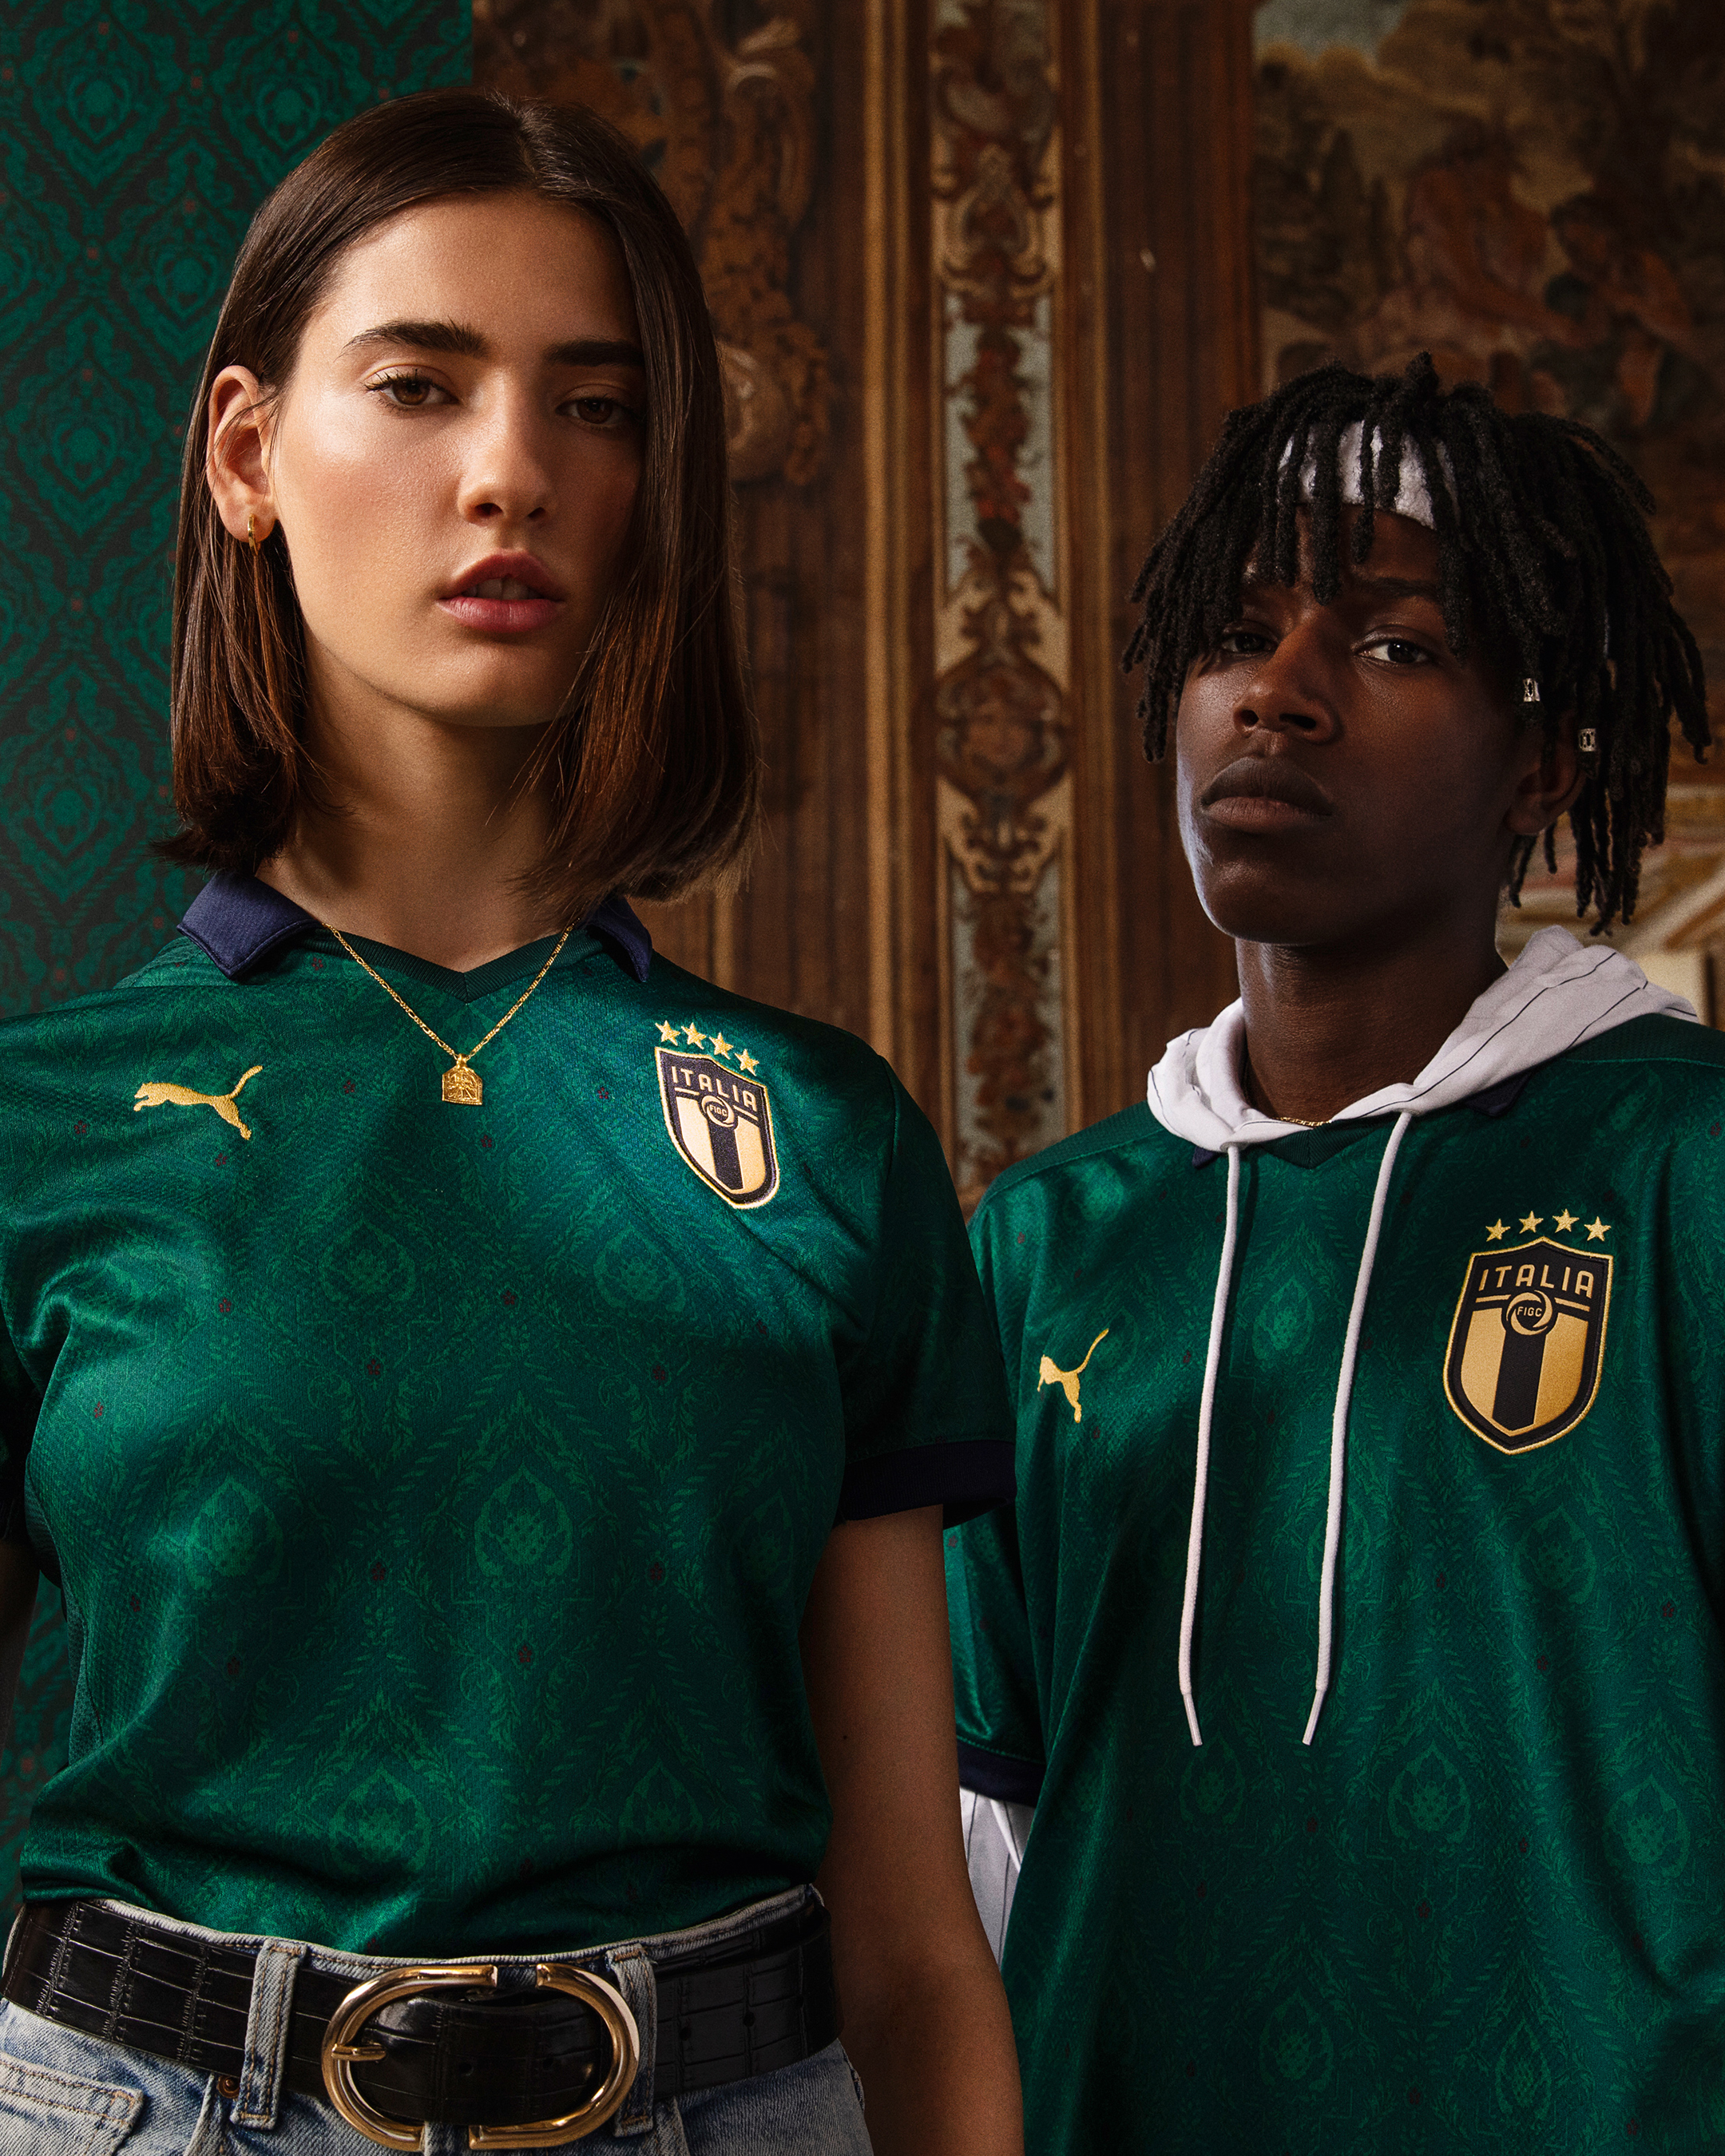 puma Archives Mondiali.it